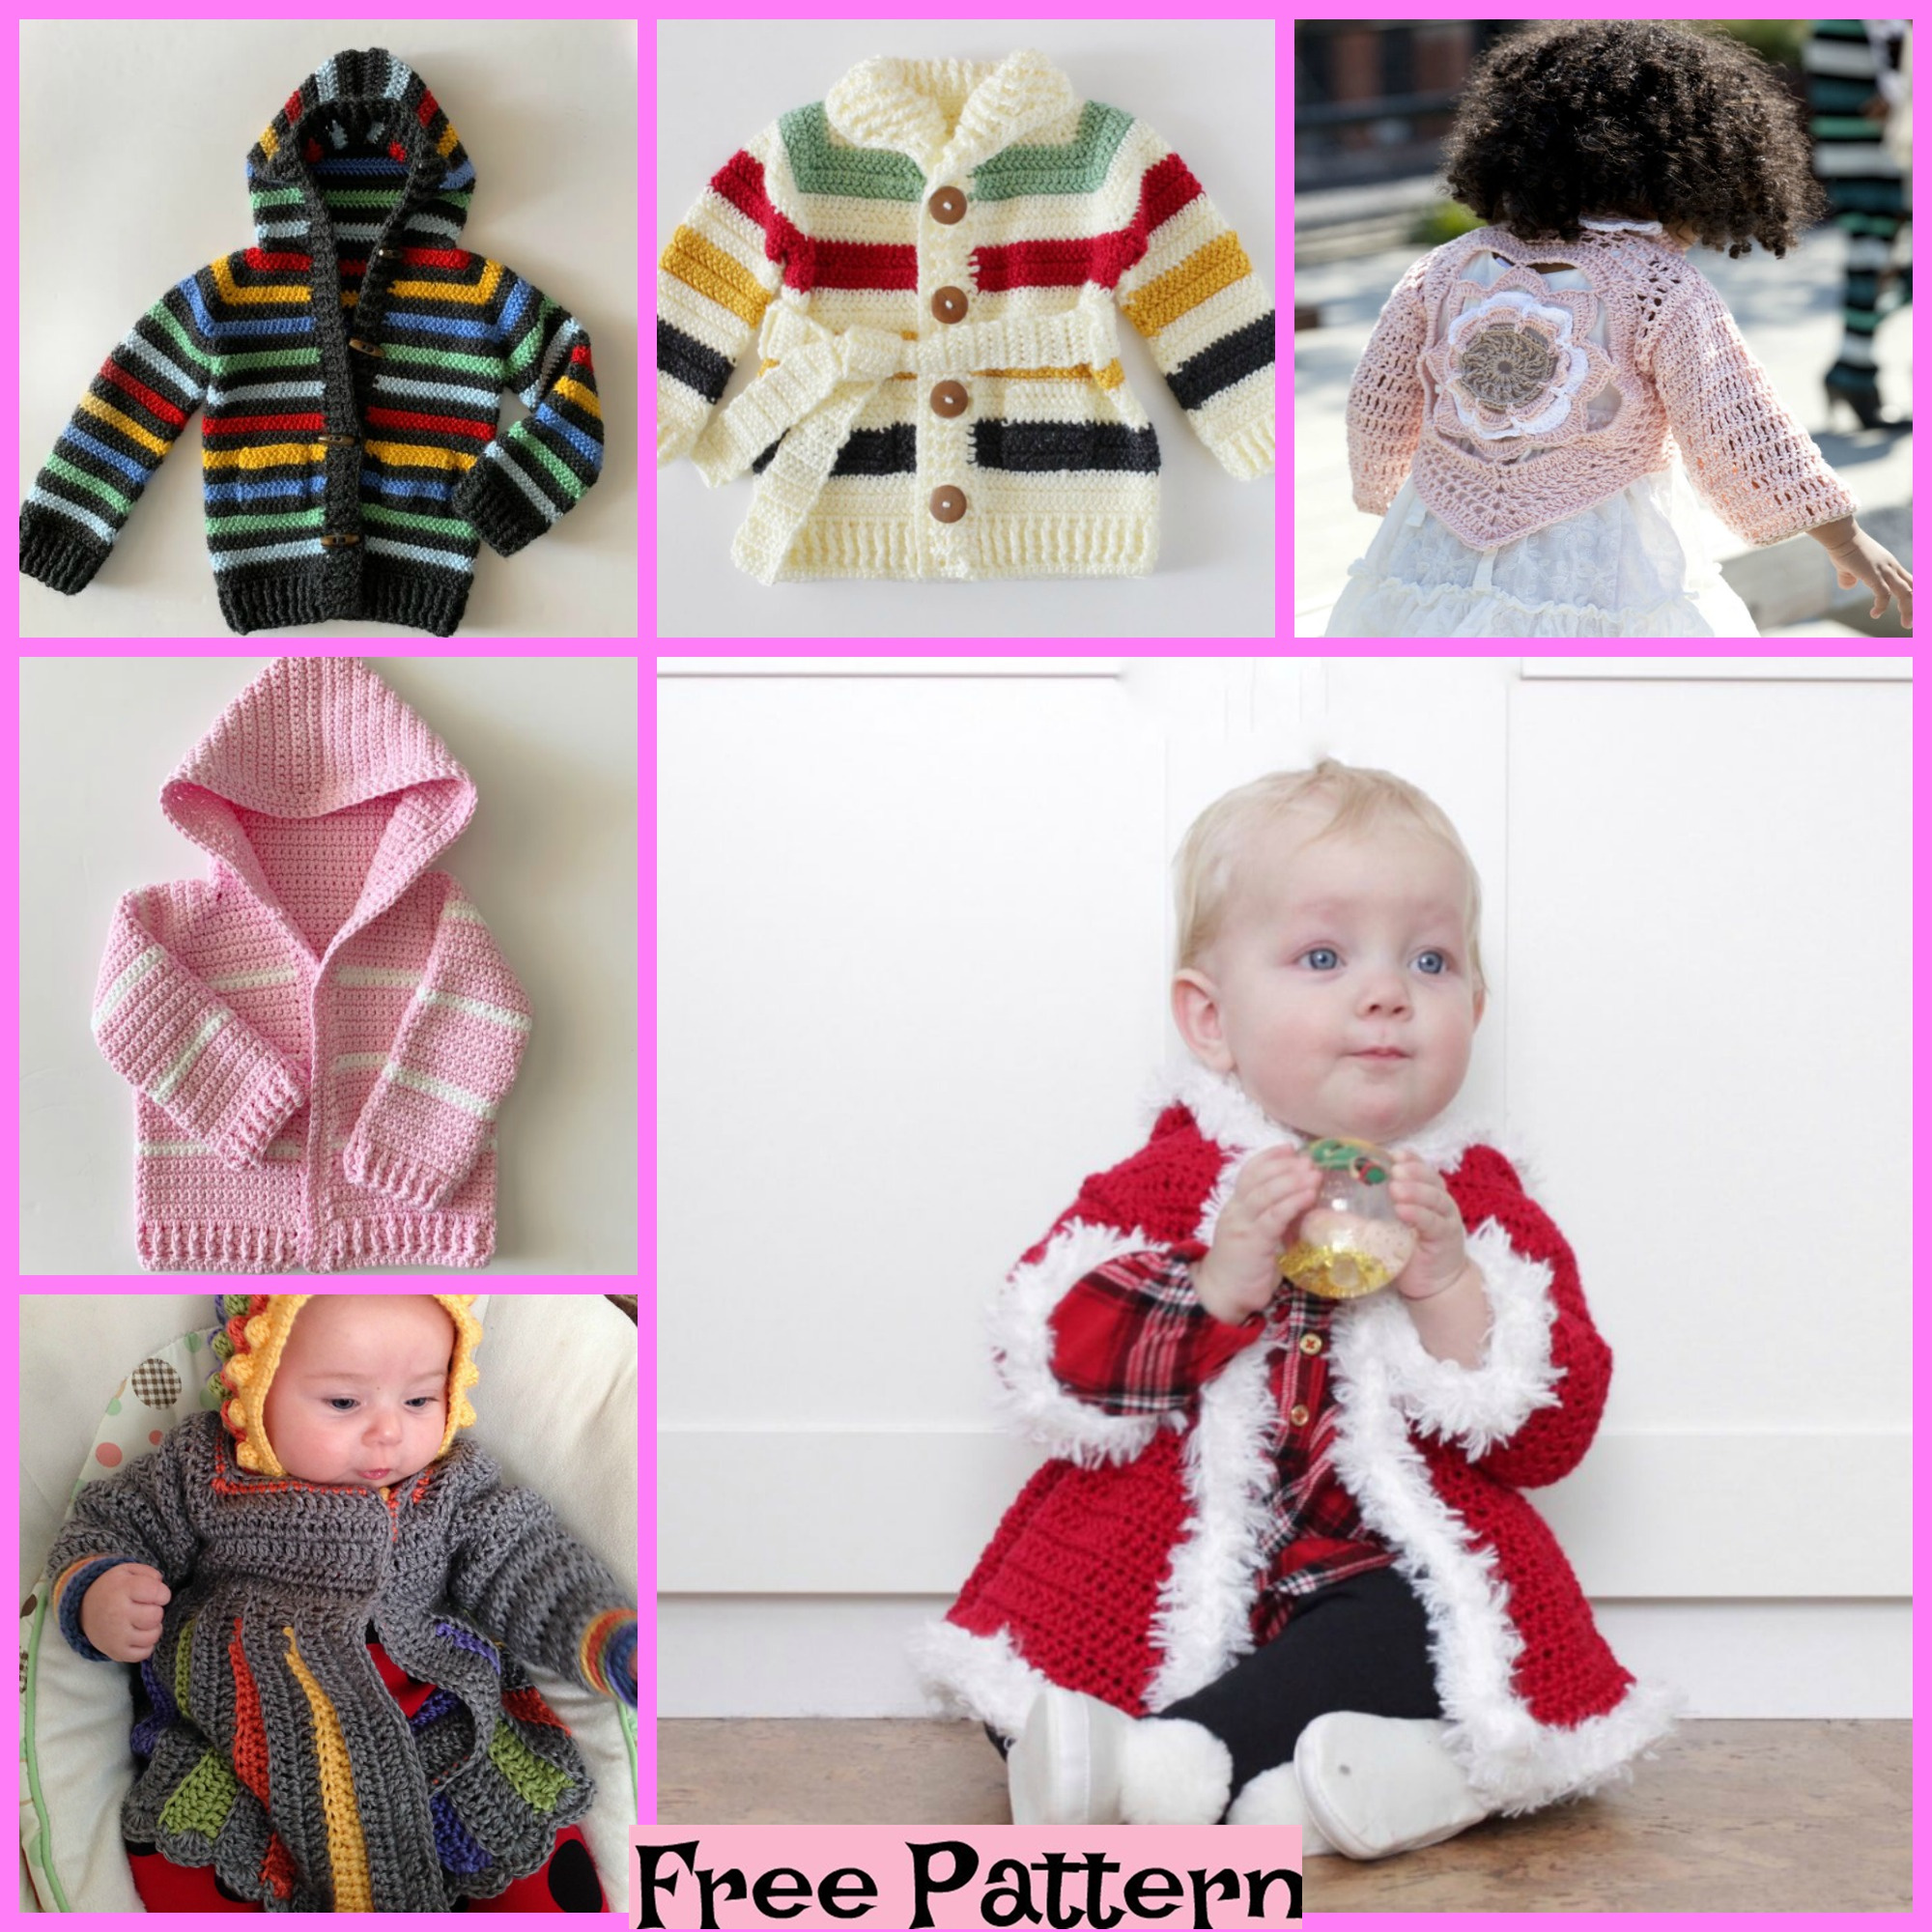 diy4ever-10 Crochet Kids Sweaters - Free Patterns